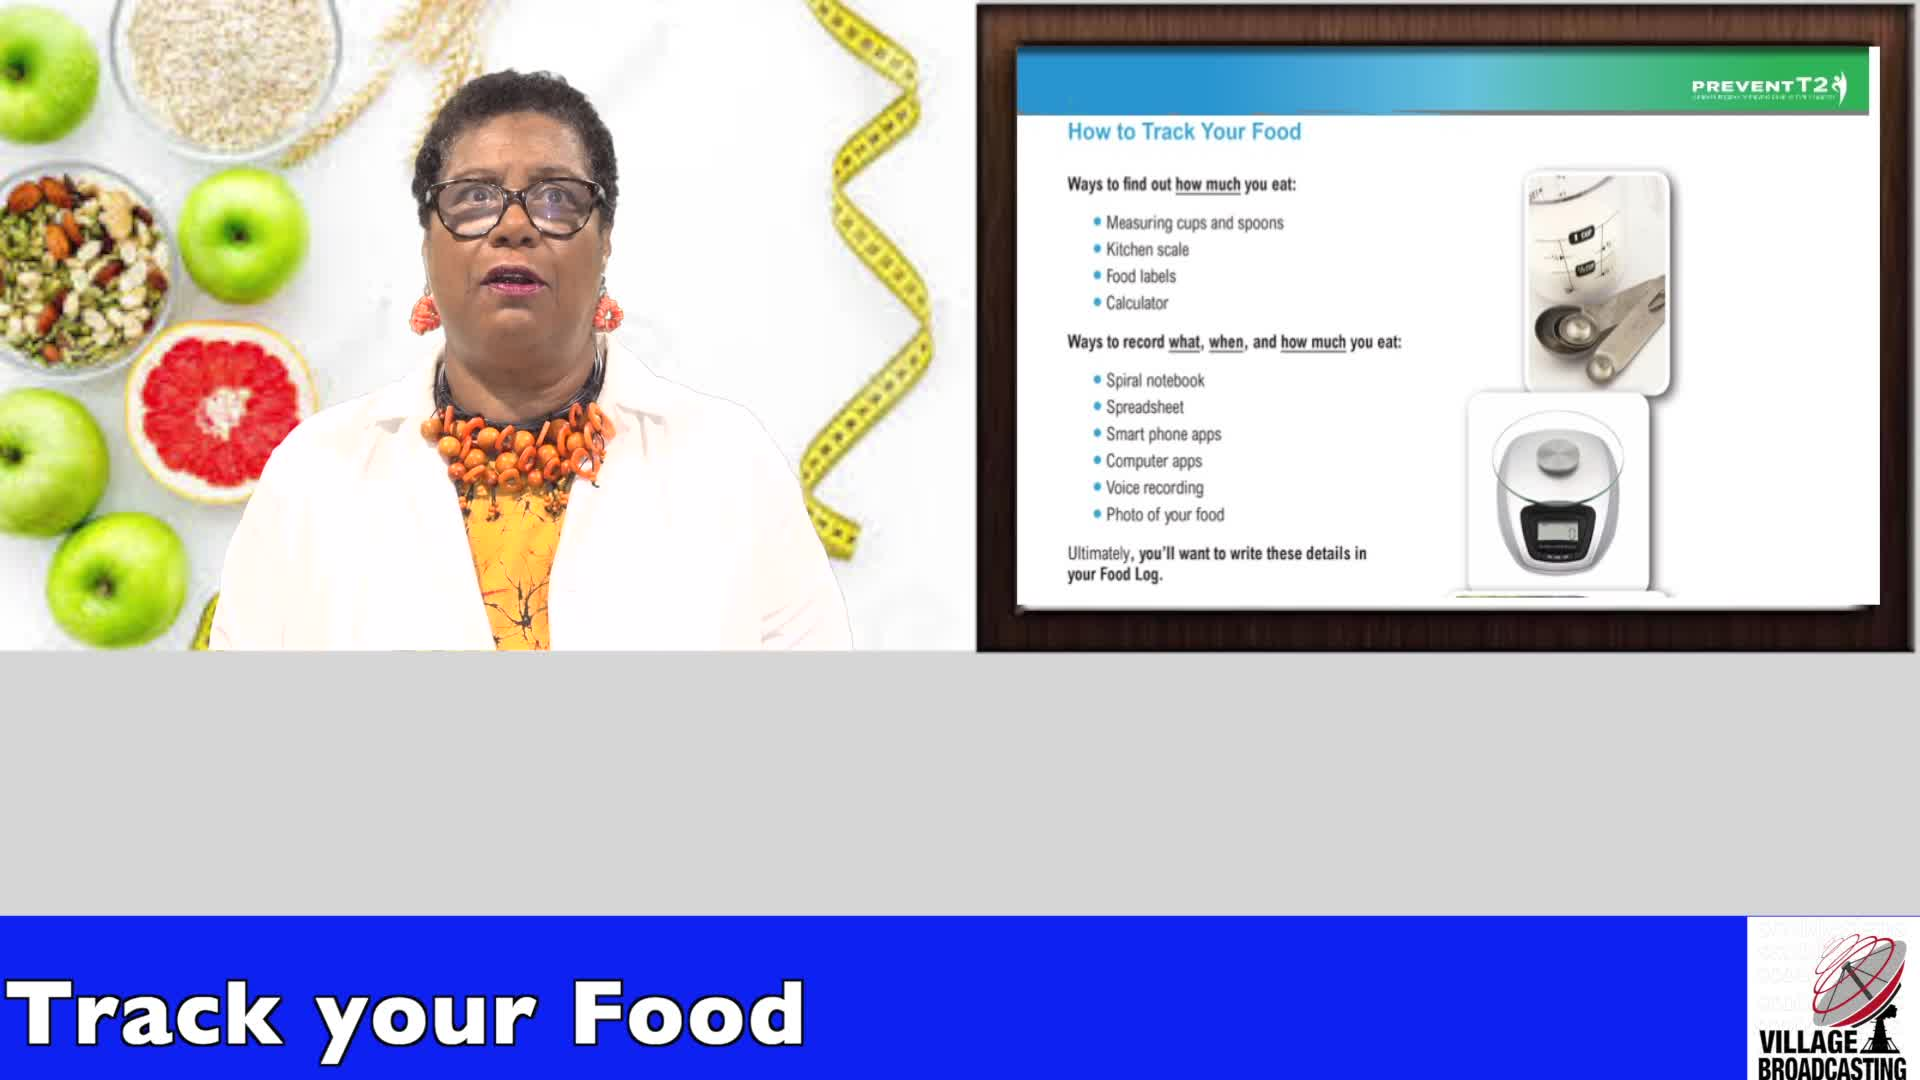 Track your food